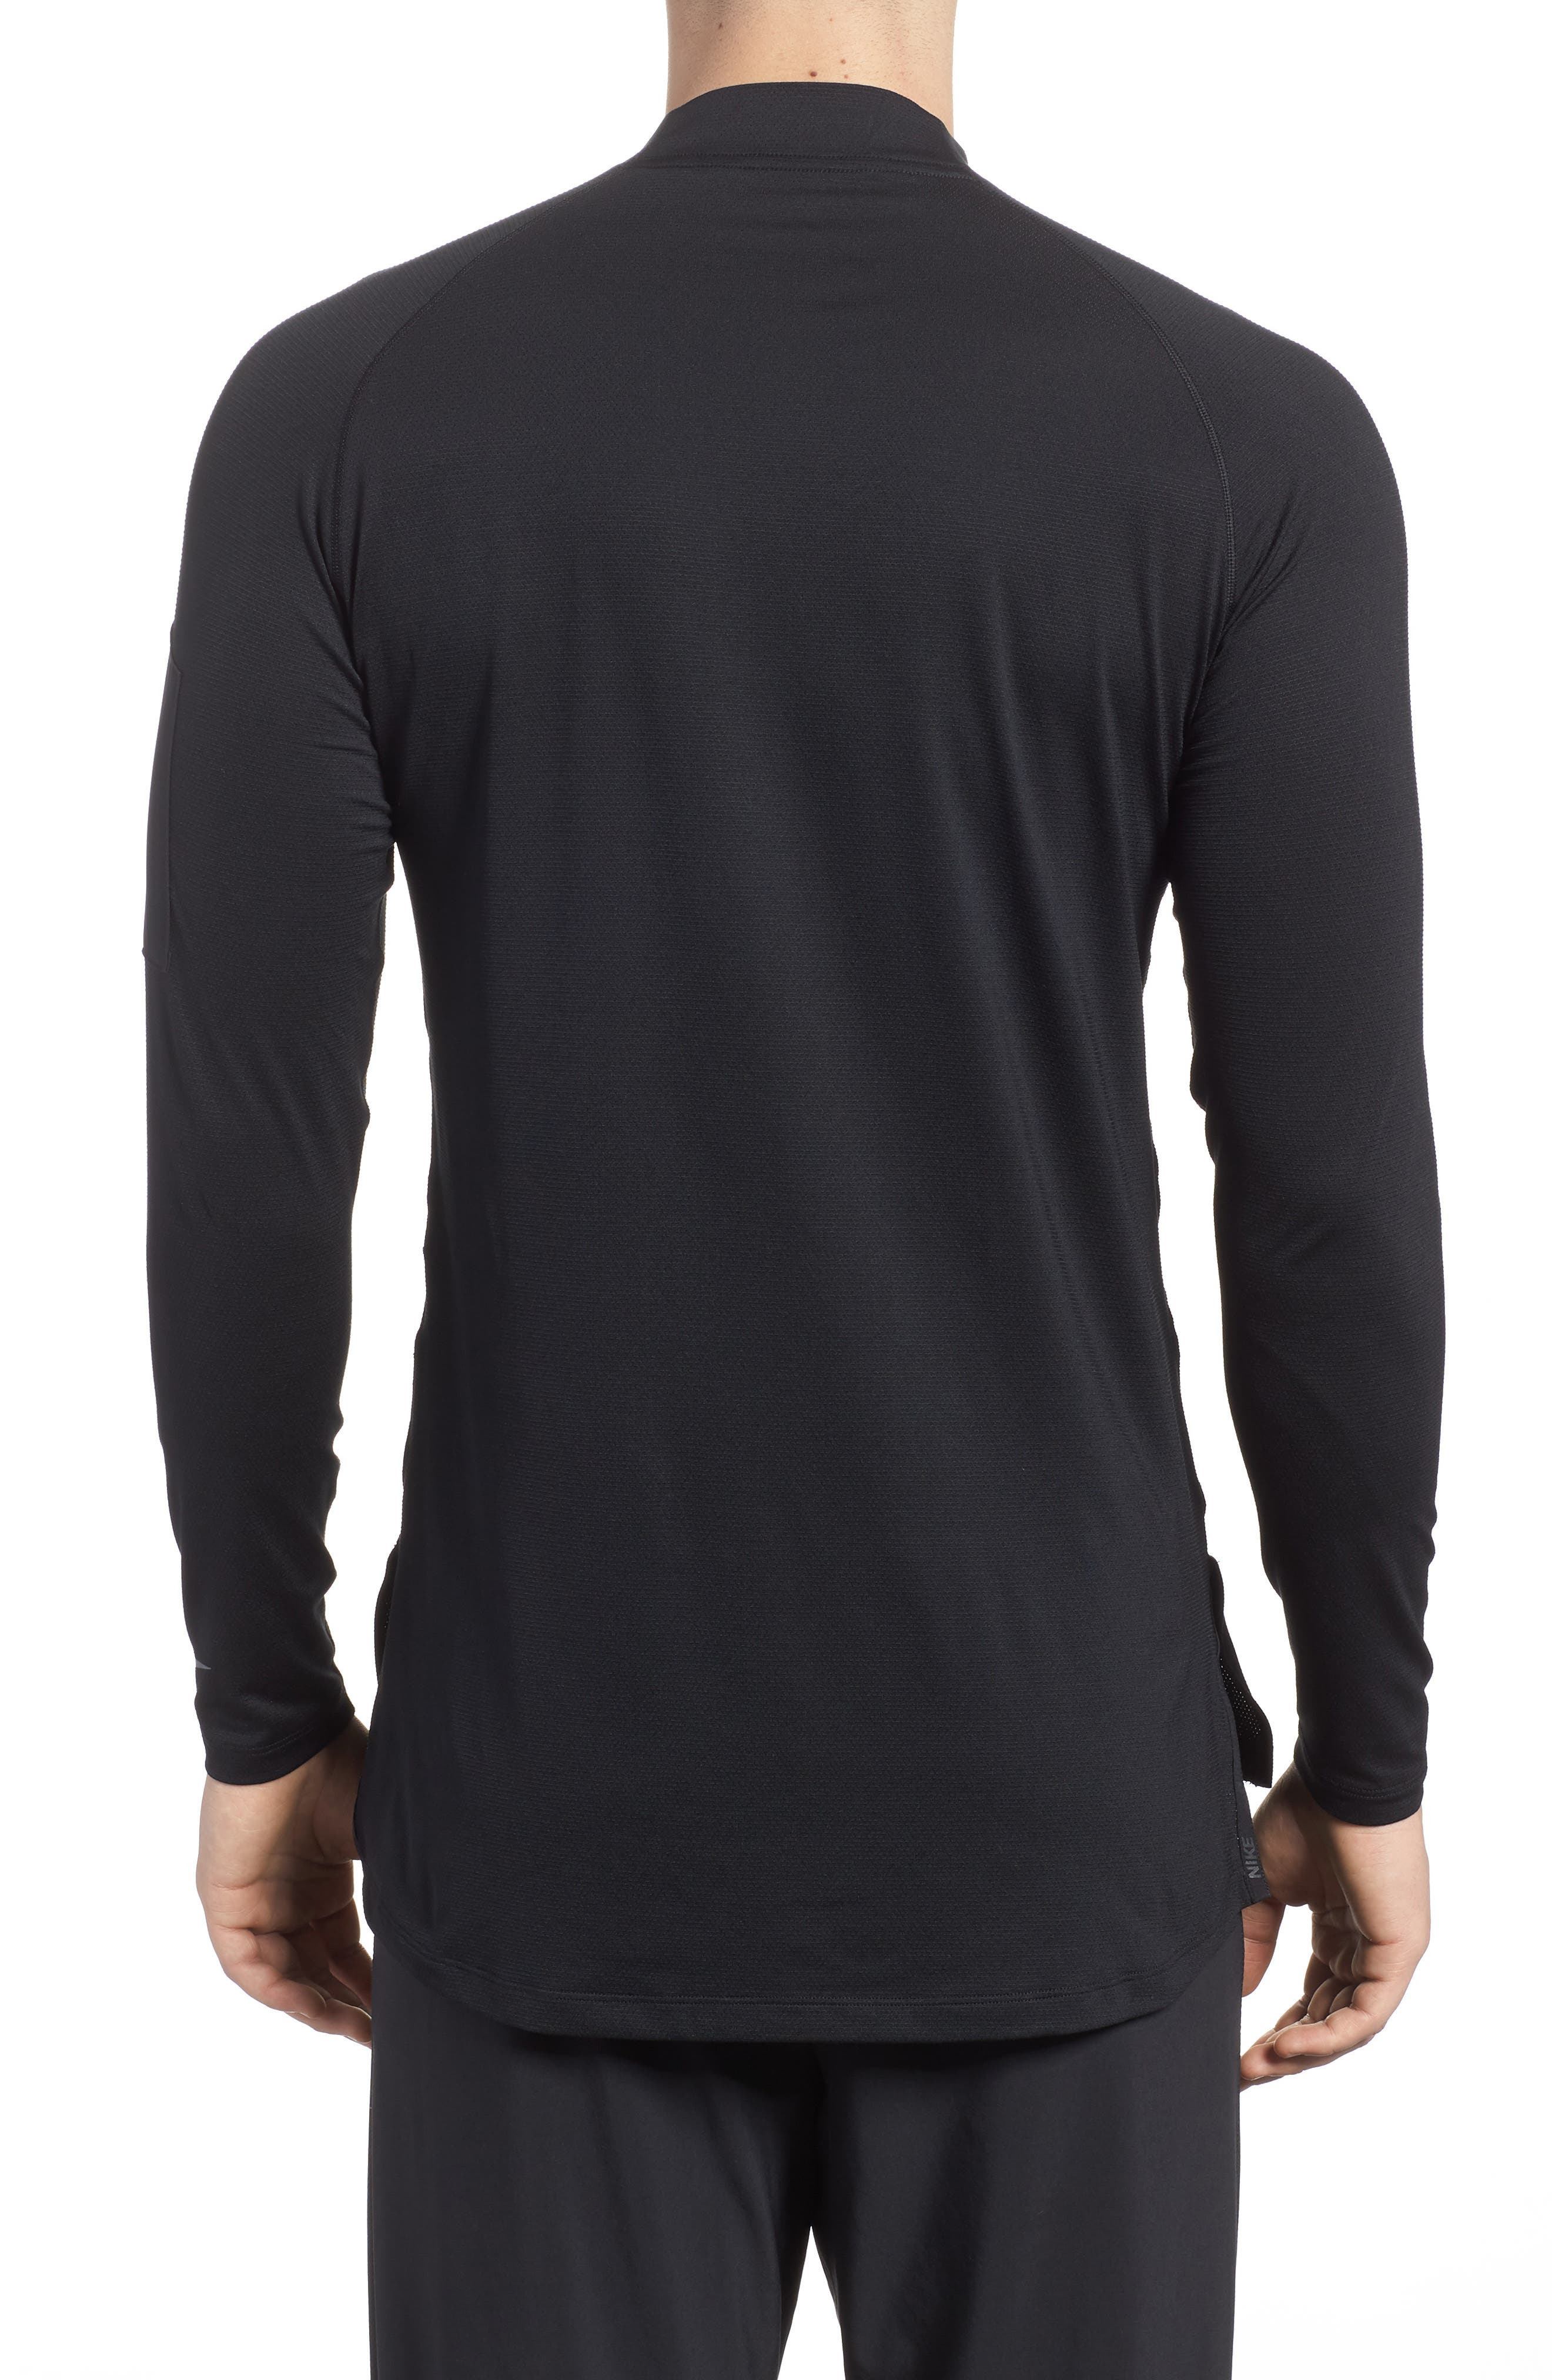 Pro Fitted Utility Dry Tech Sport Top,                             Alternate thumbnail 2, color,                             Black/ Black